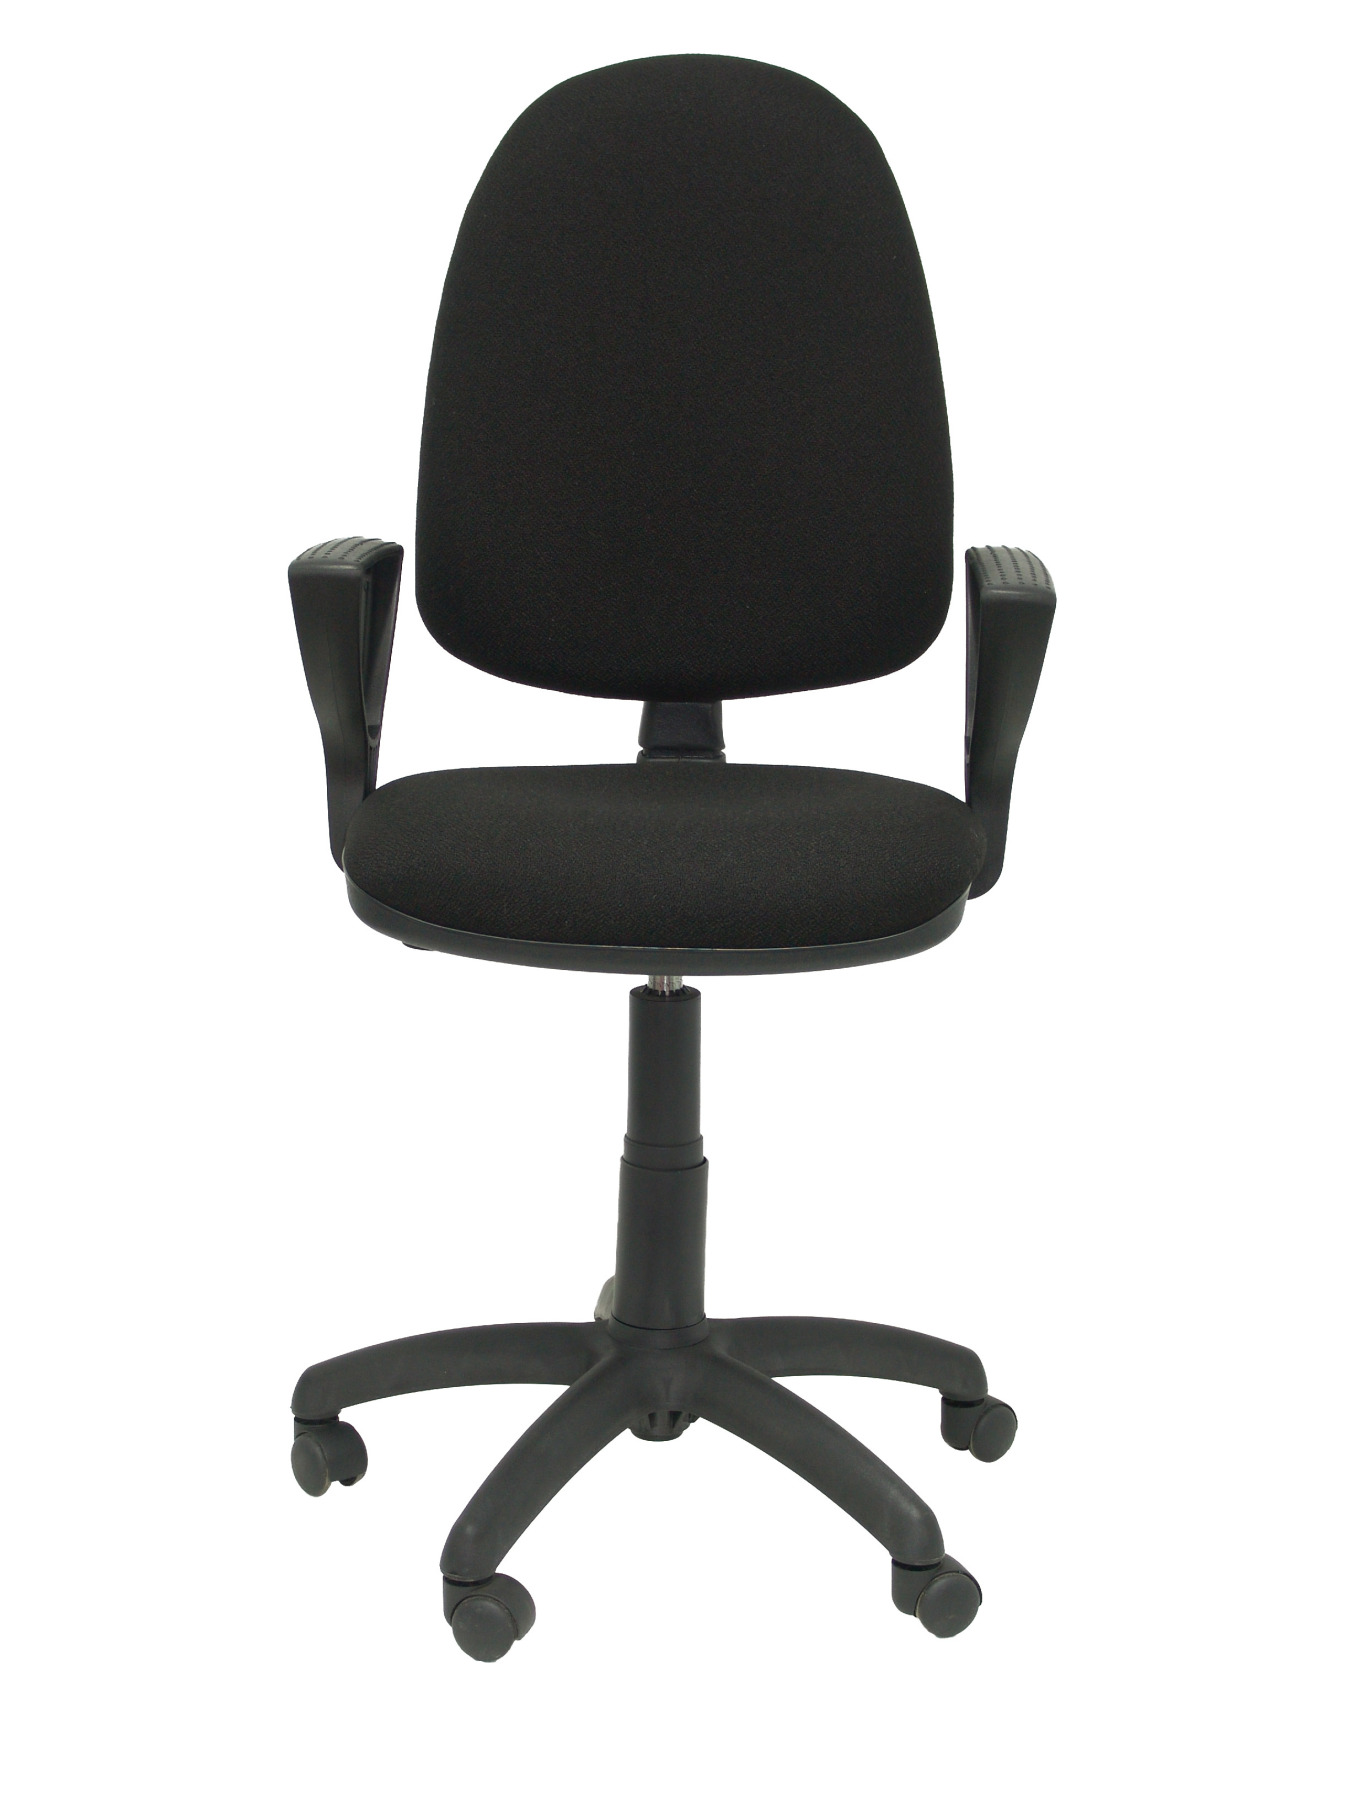 OUTLET Ergonomic Office Chair With Mechanism Permanent Contact And Adjustable Height Seat And Backrest Tapestry